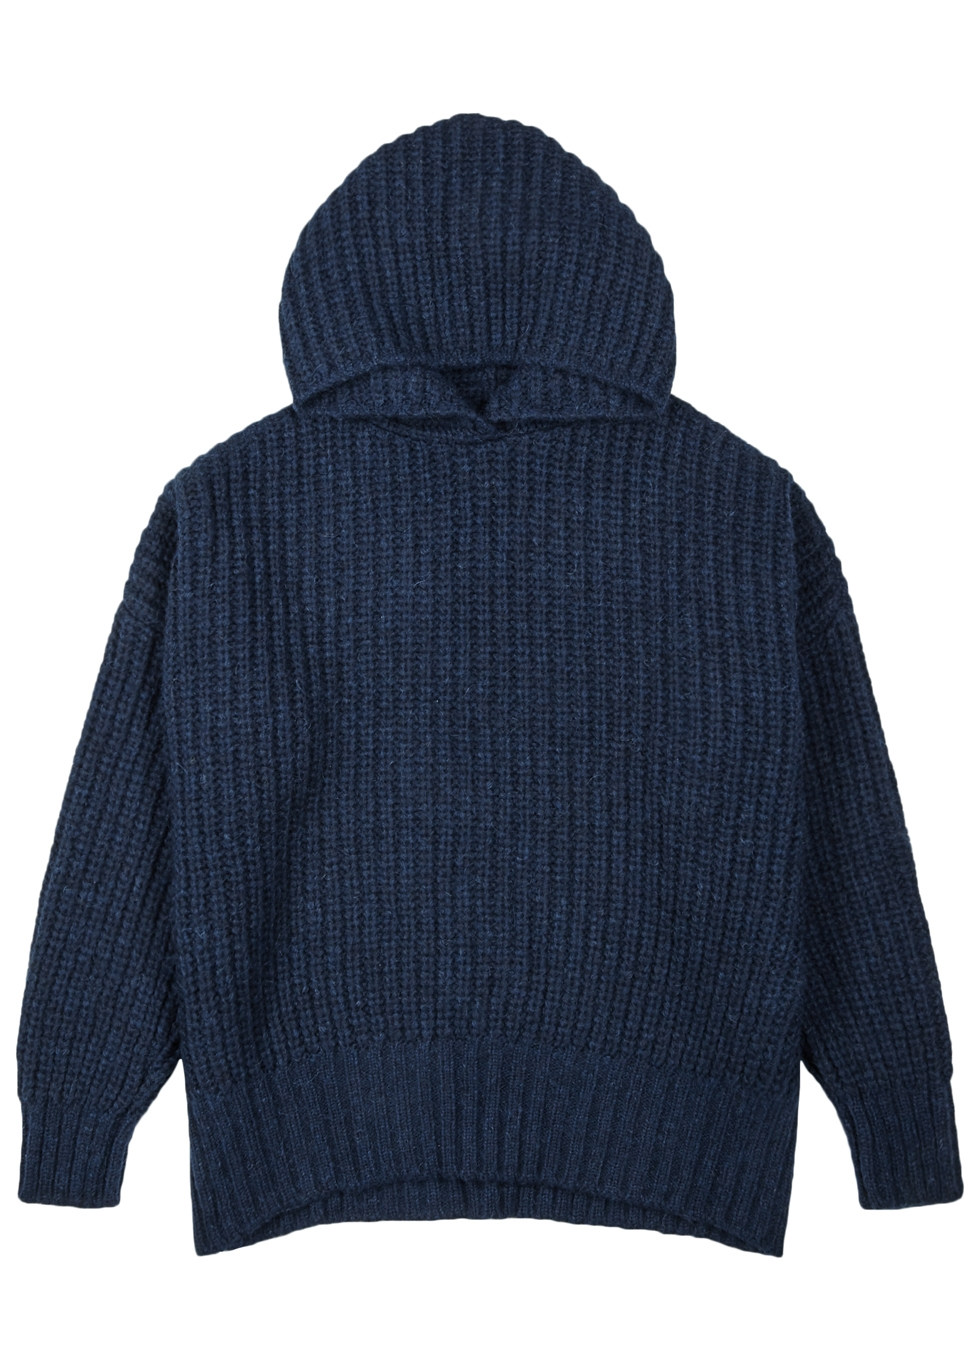 OPPORTUNO Katy Chunky-Knit Alpaca-Blend Jumper in Navy